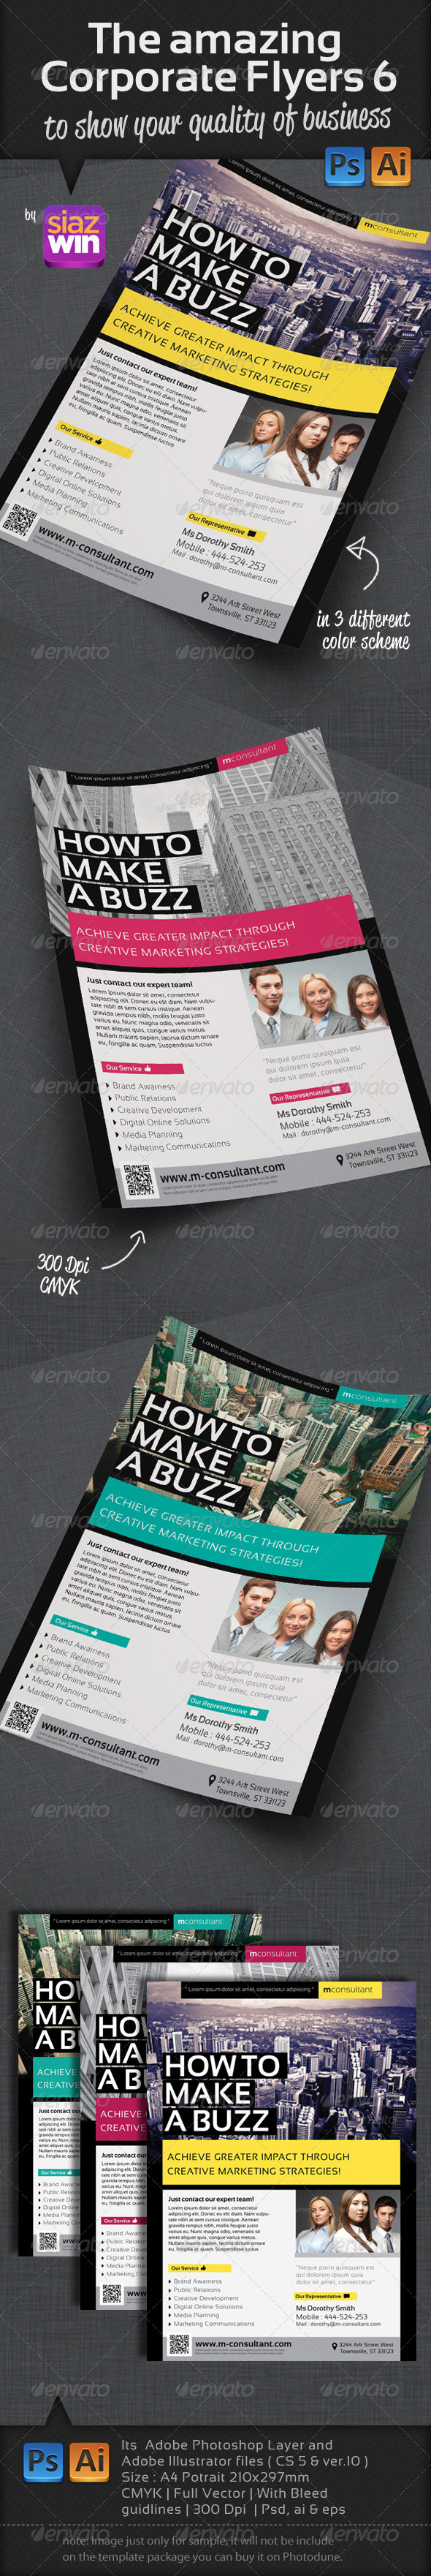 The Corporate Flyers 6 - Corporate Flyers